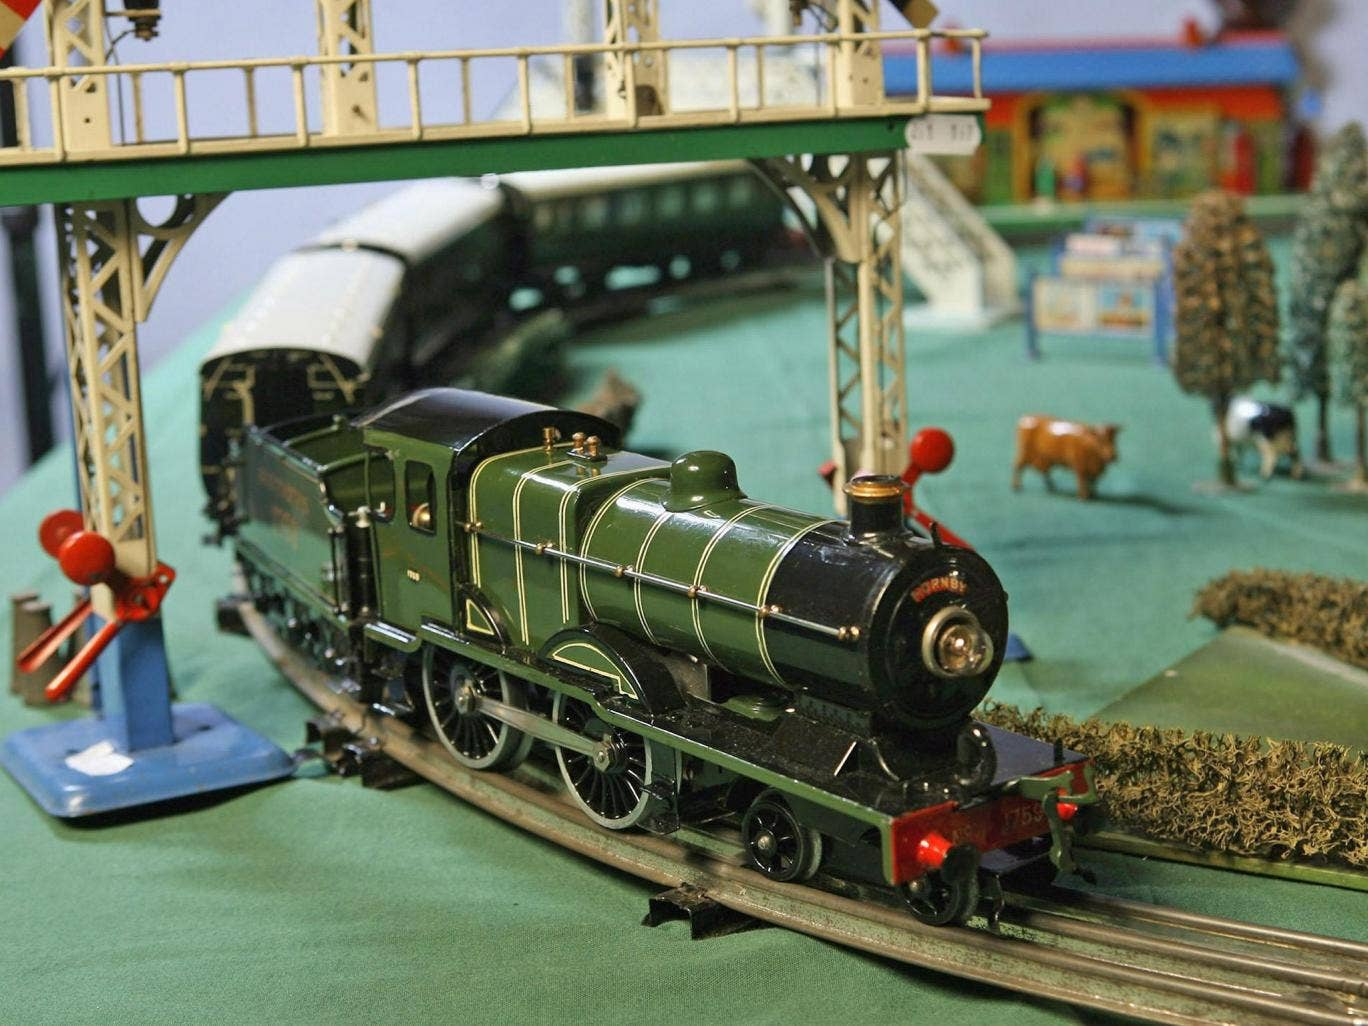 Toymaker Hornby to seek new finance deal after sales slump